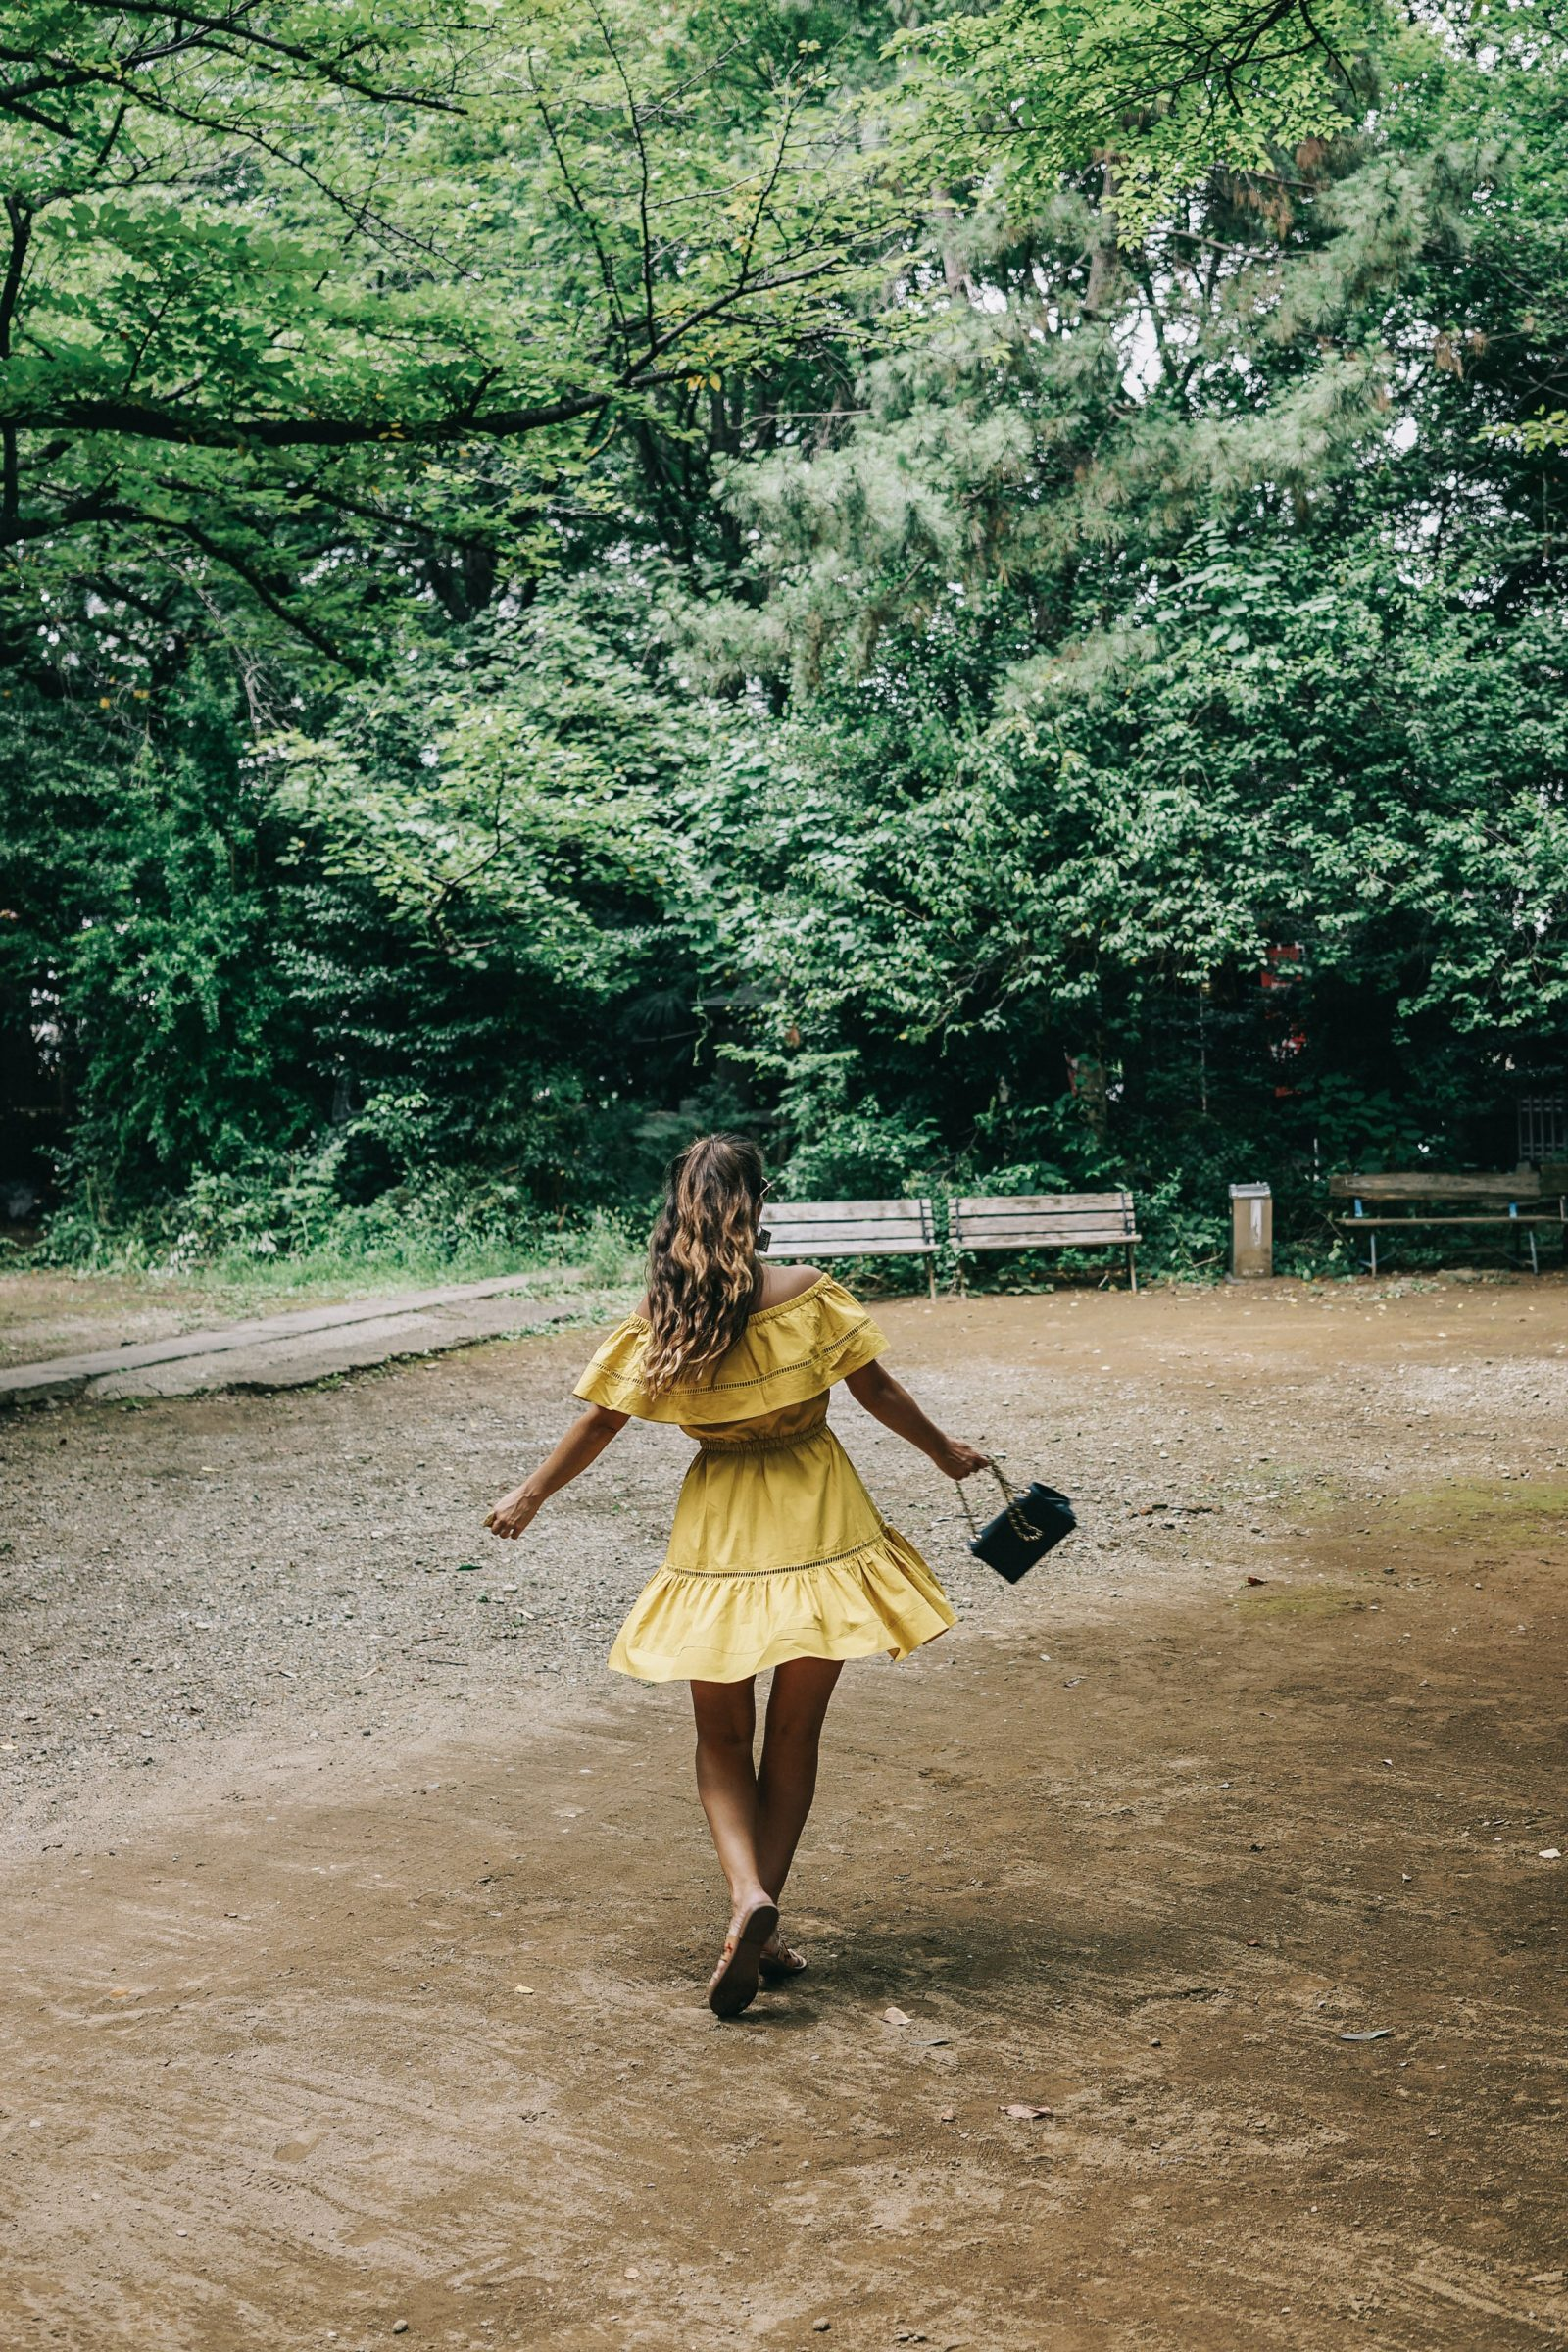 tokyo_travel_guide-outfit-collage_vintage-street_style-off_the_shoulders_dress-mustard_dress-soludos_sandals-chanel_vintage-bag-vintage_stores-24